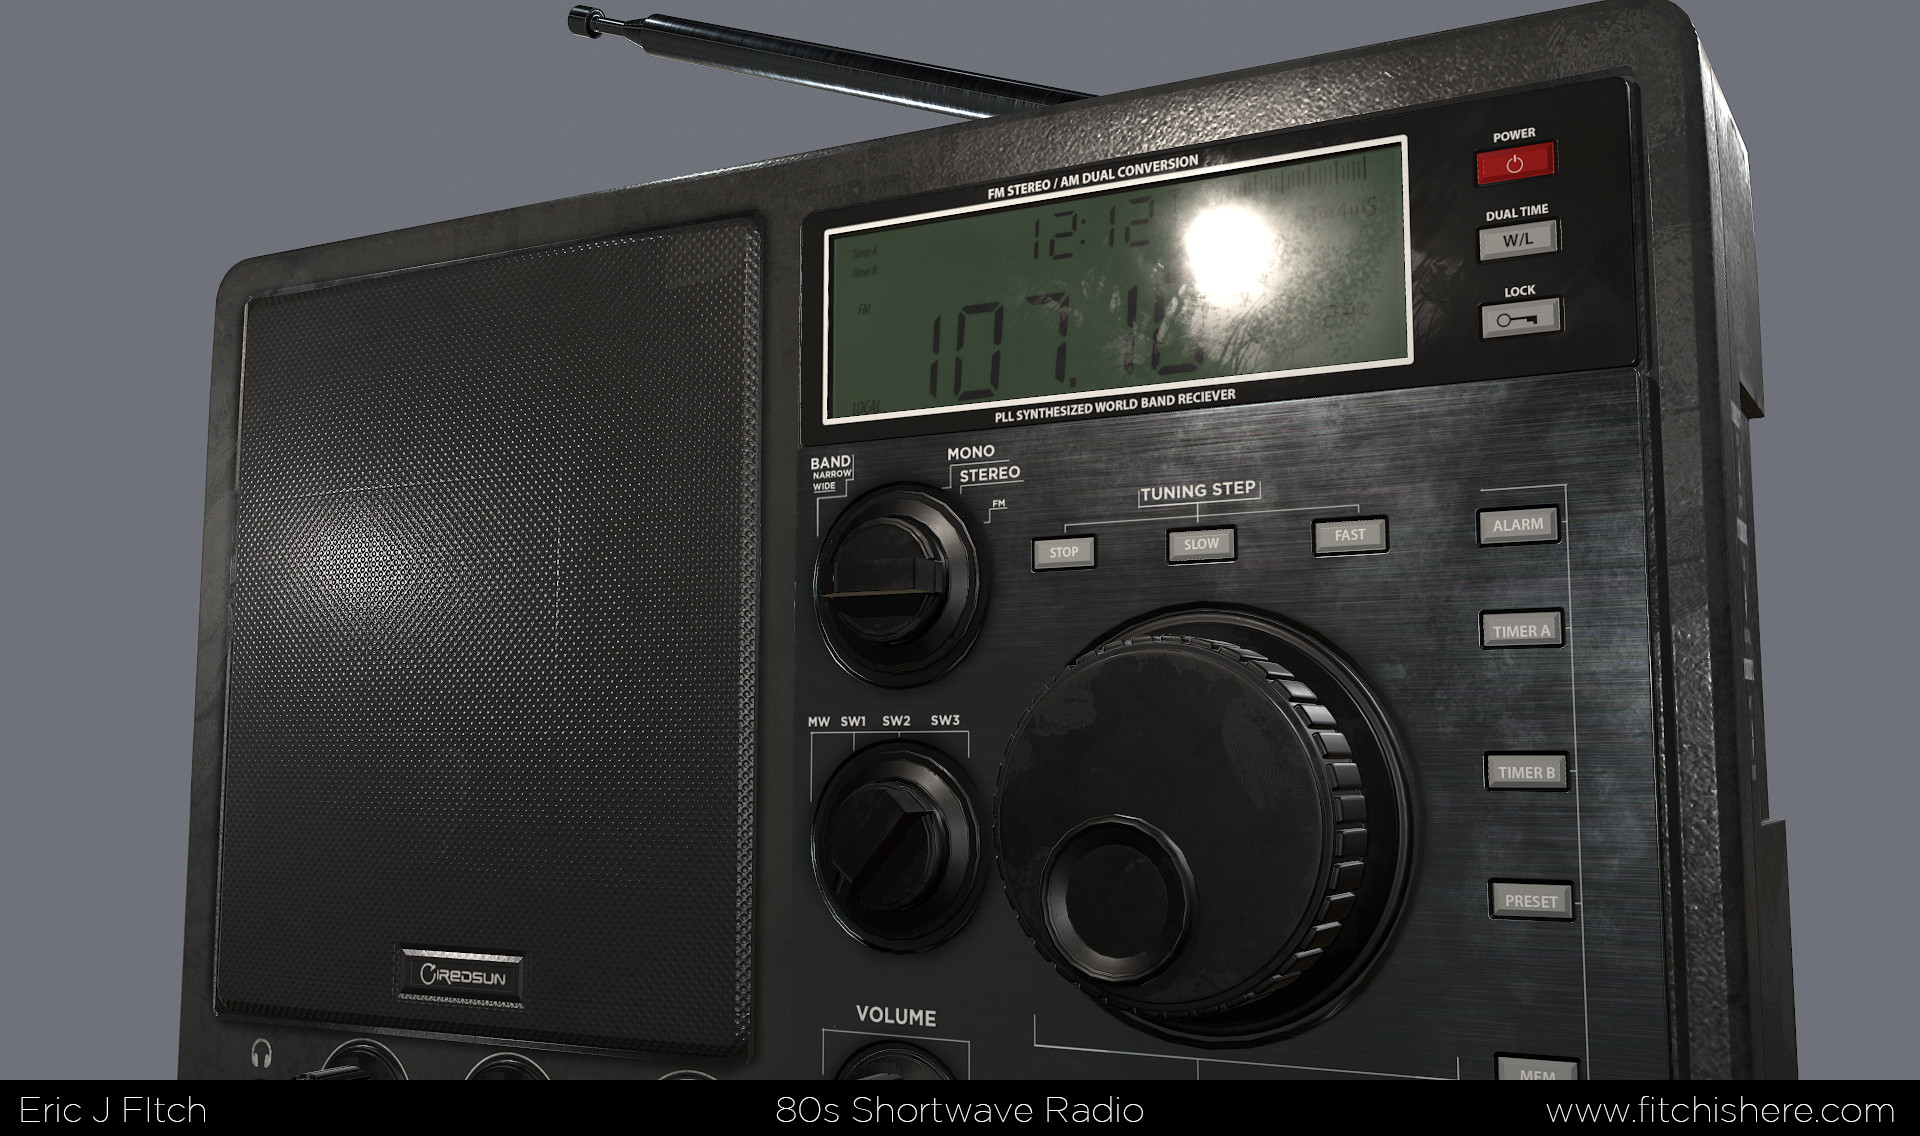 Fitch Is Here - Eric J Fitch's 3D Art Portfolio - 80s Shortwave Radio